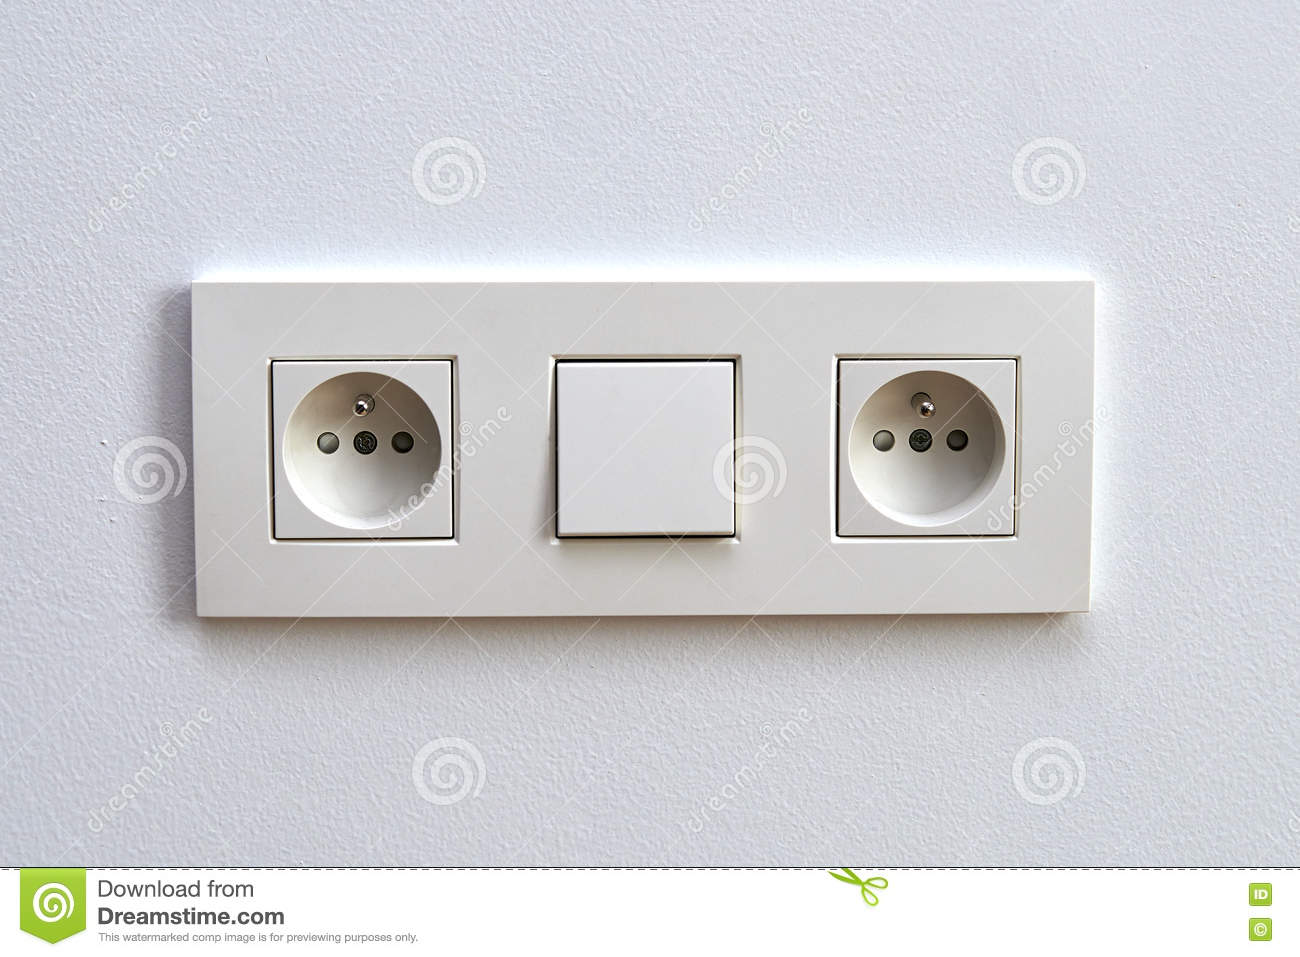 White Light Switch And Electrical Outlet Stock Image - Image of home ...